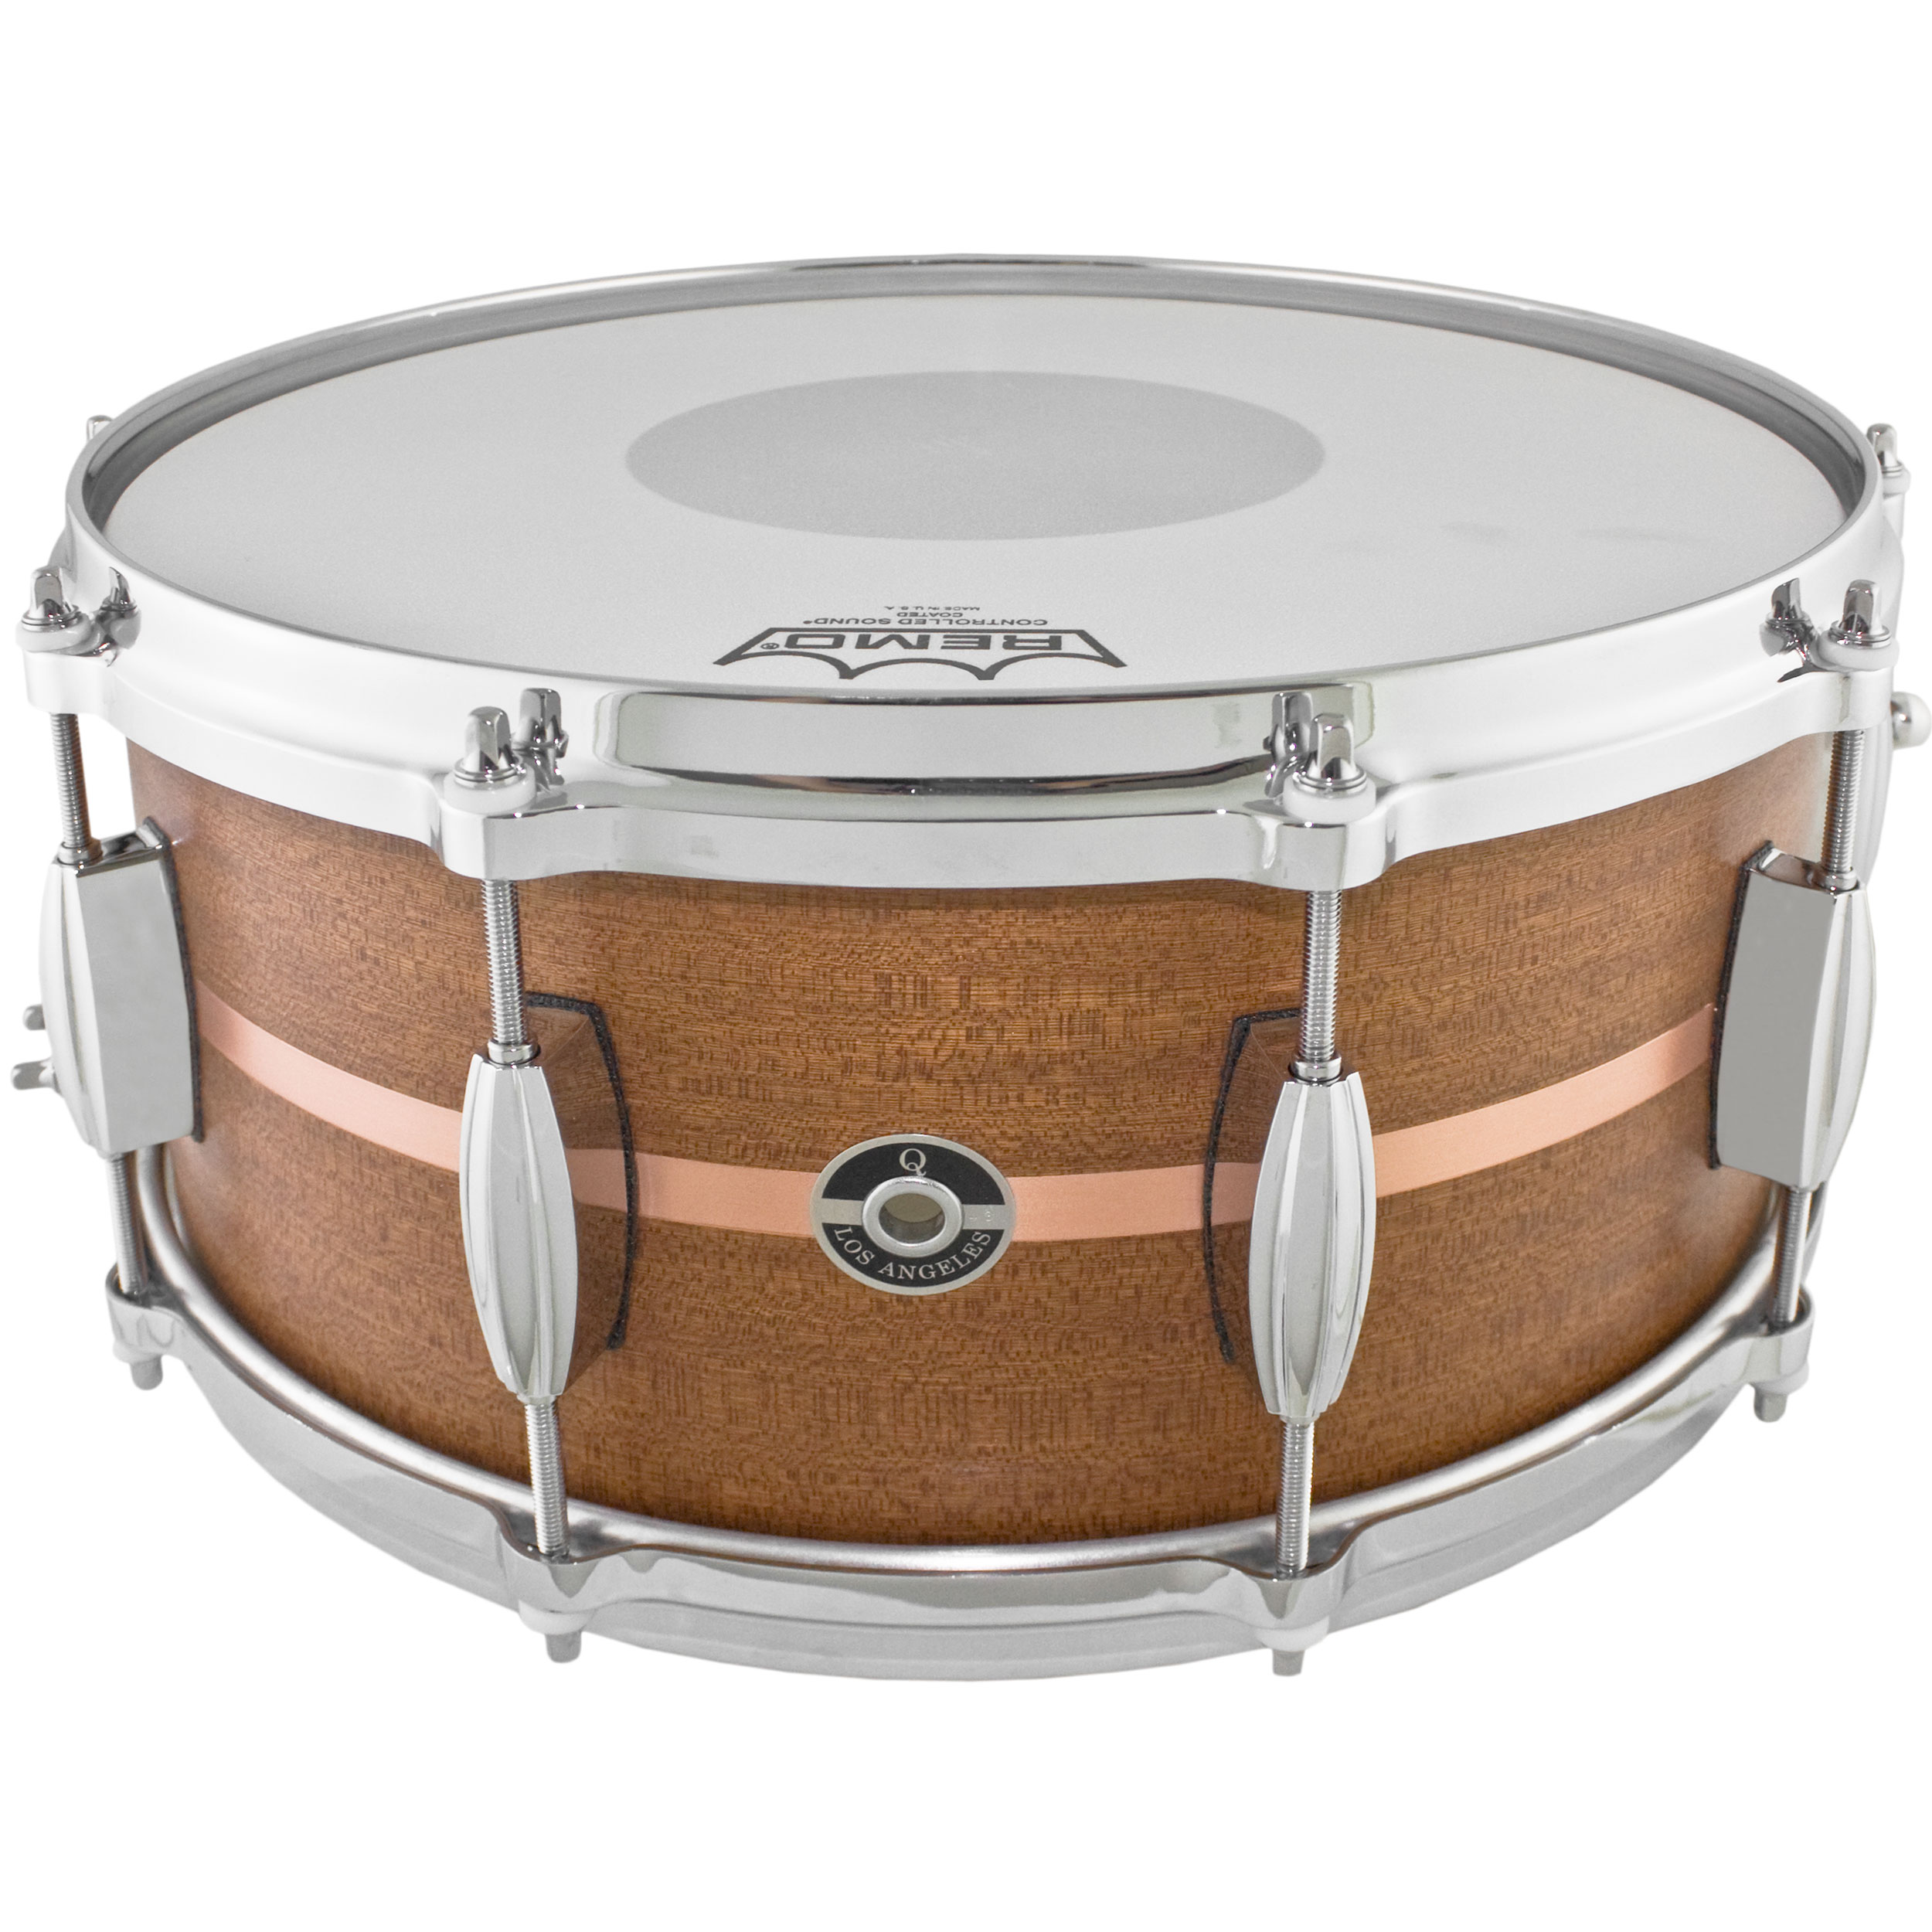 """Q Drum Co. 7"""" x 14"""" Mahogany/Poplar Snare Drum with Copper Inlay"""